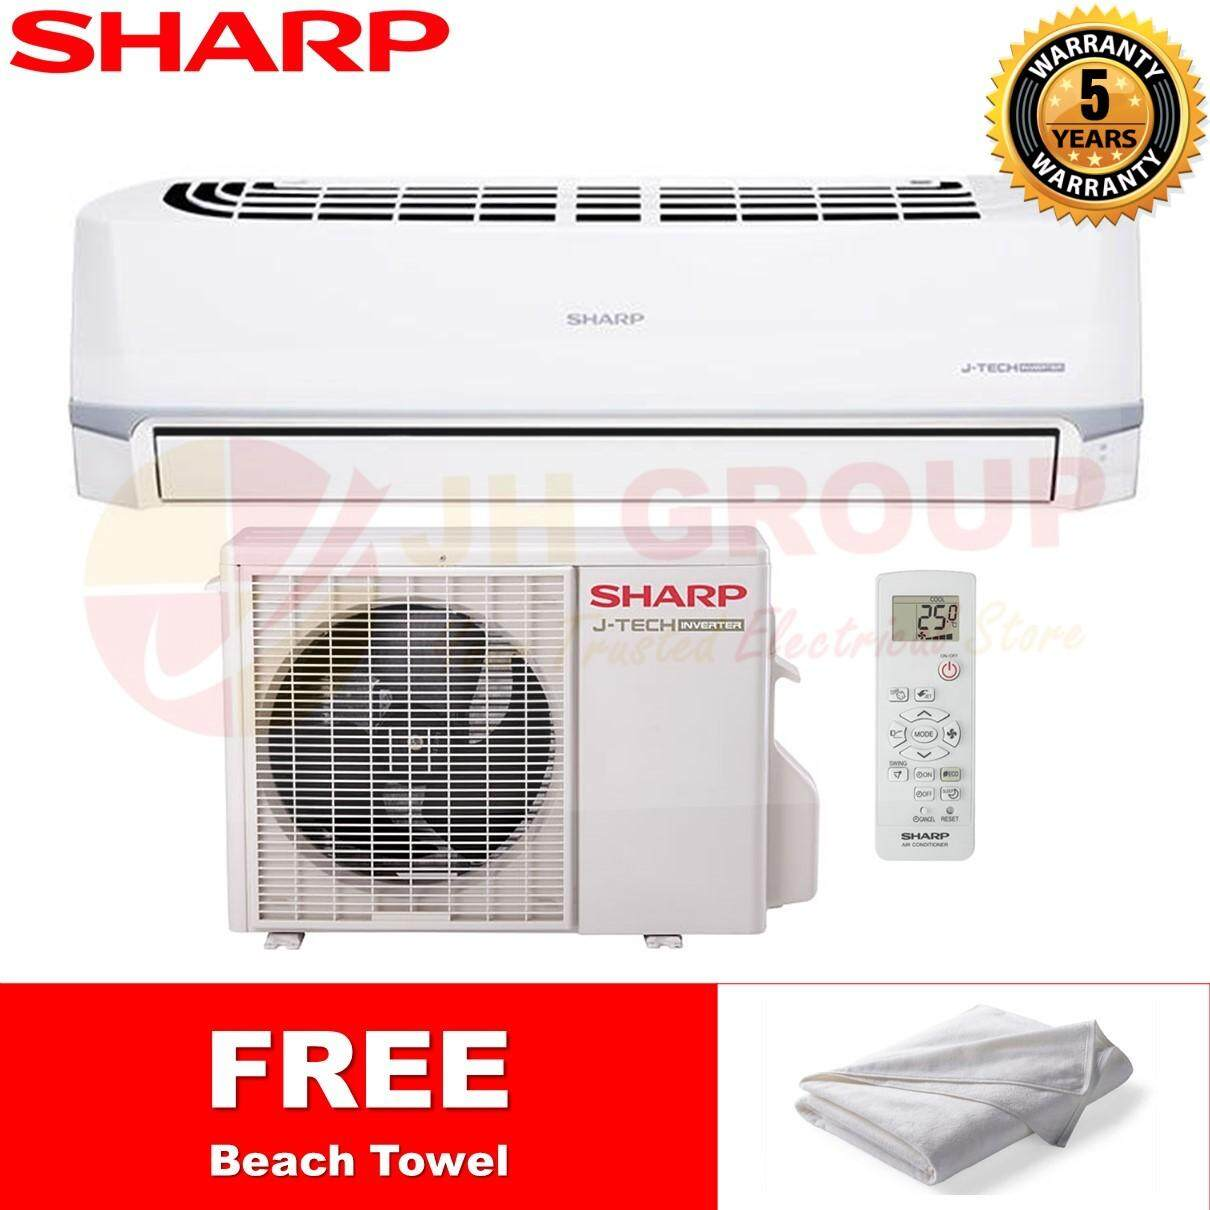 SHARP JAPAN AHX18UED / AUX18UED 2HP R410A INVERTER AIR CONDITIONER